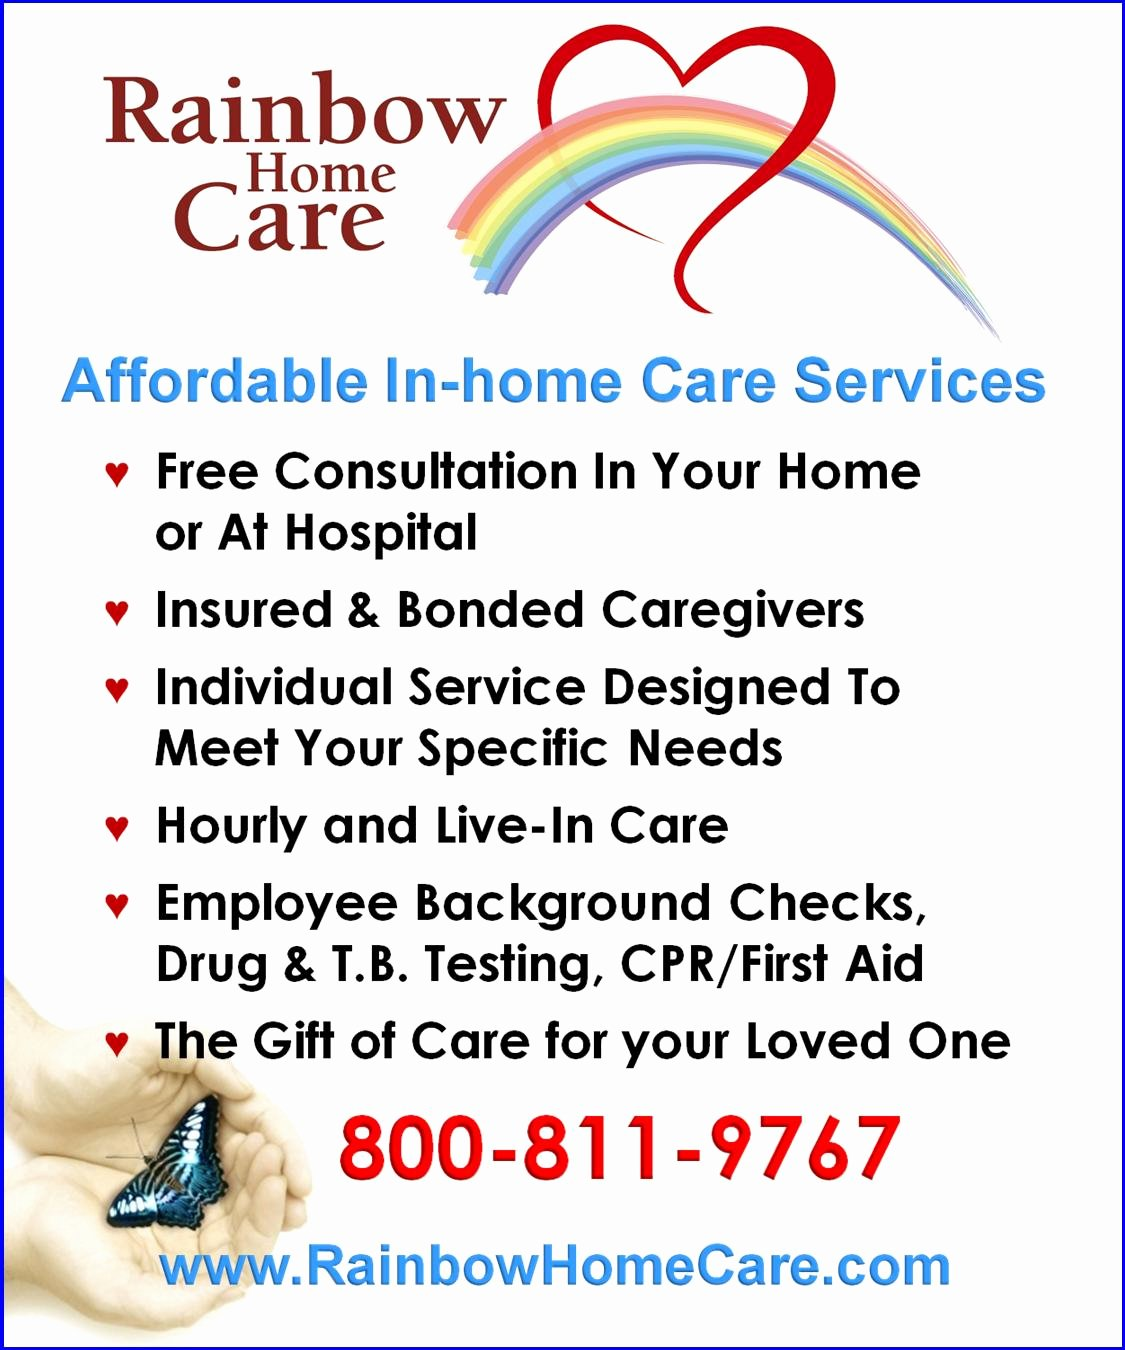 Home Health Care Flyers Best Of Rhcs Services 1 Pdf Rhcs Services 2 Pdf